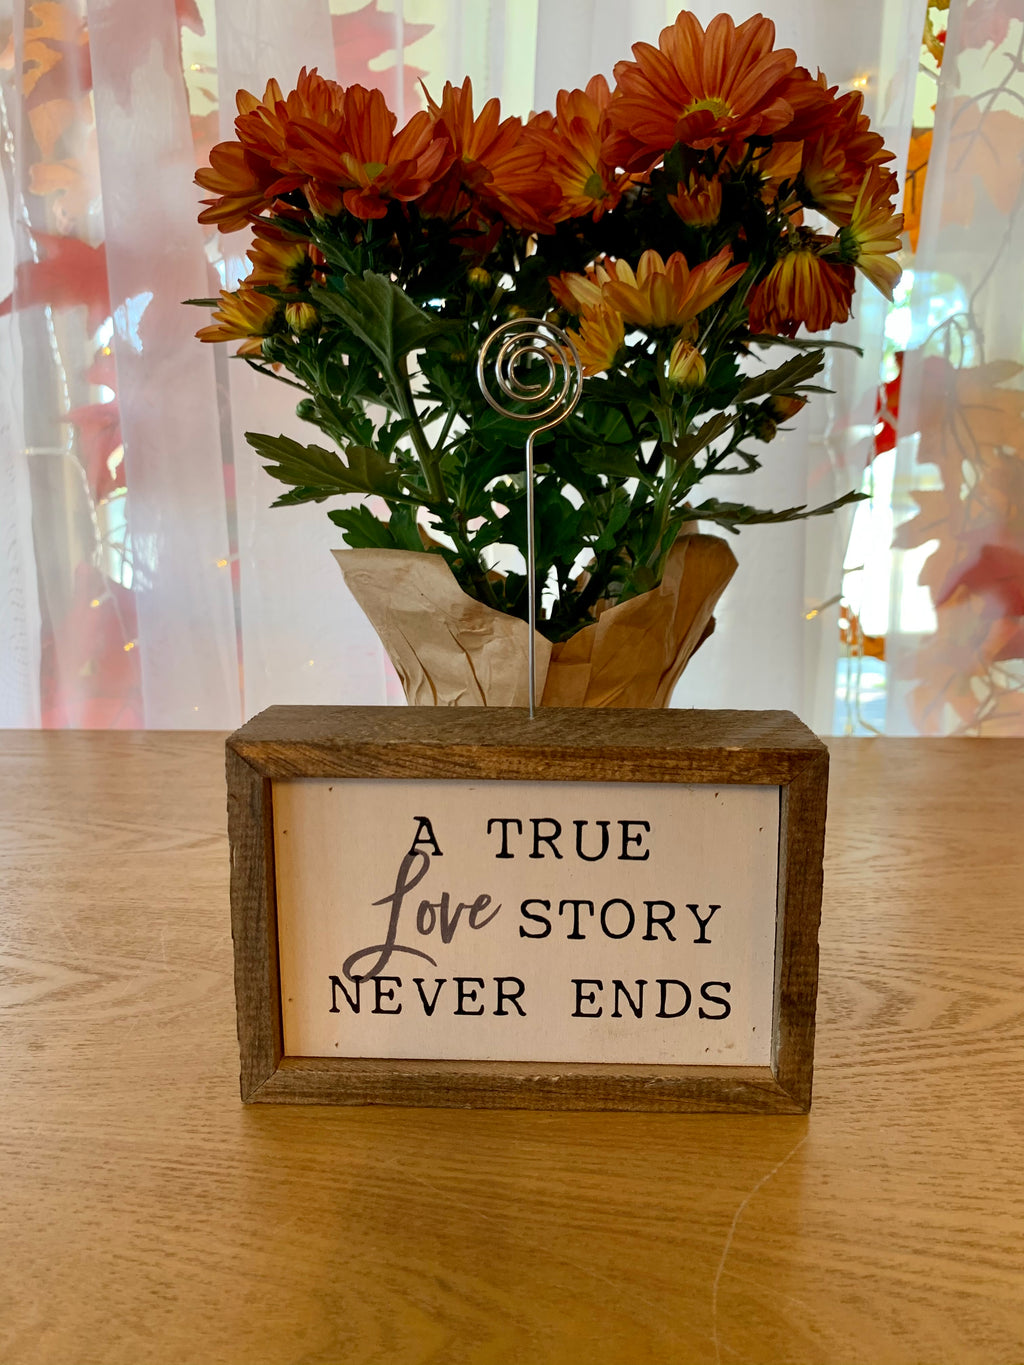 A TRUE LOVE STORY NEVER ENDS -6X4 TABLETOP PICTURE FRAME